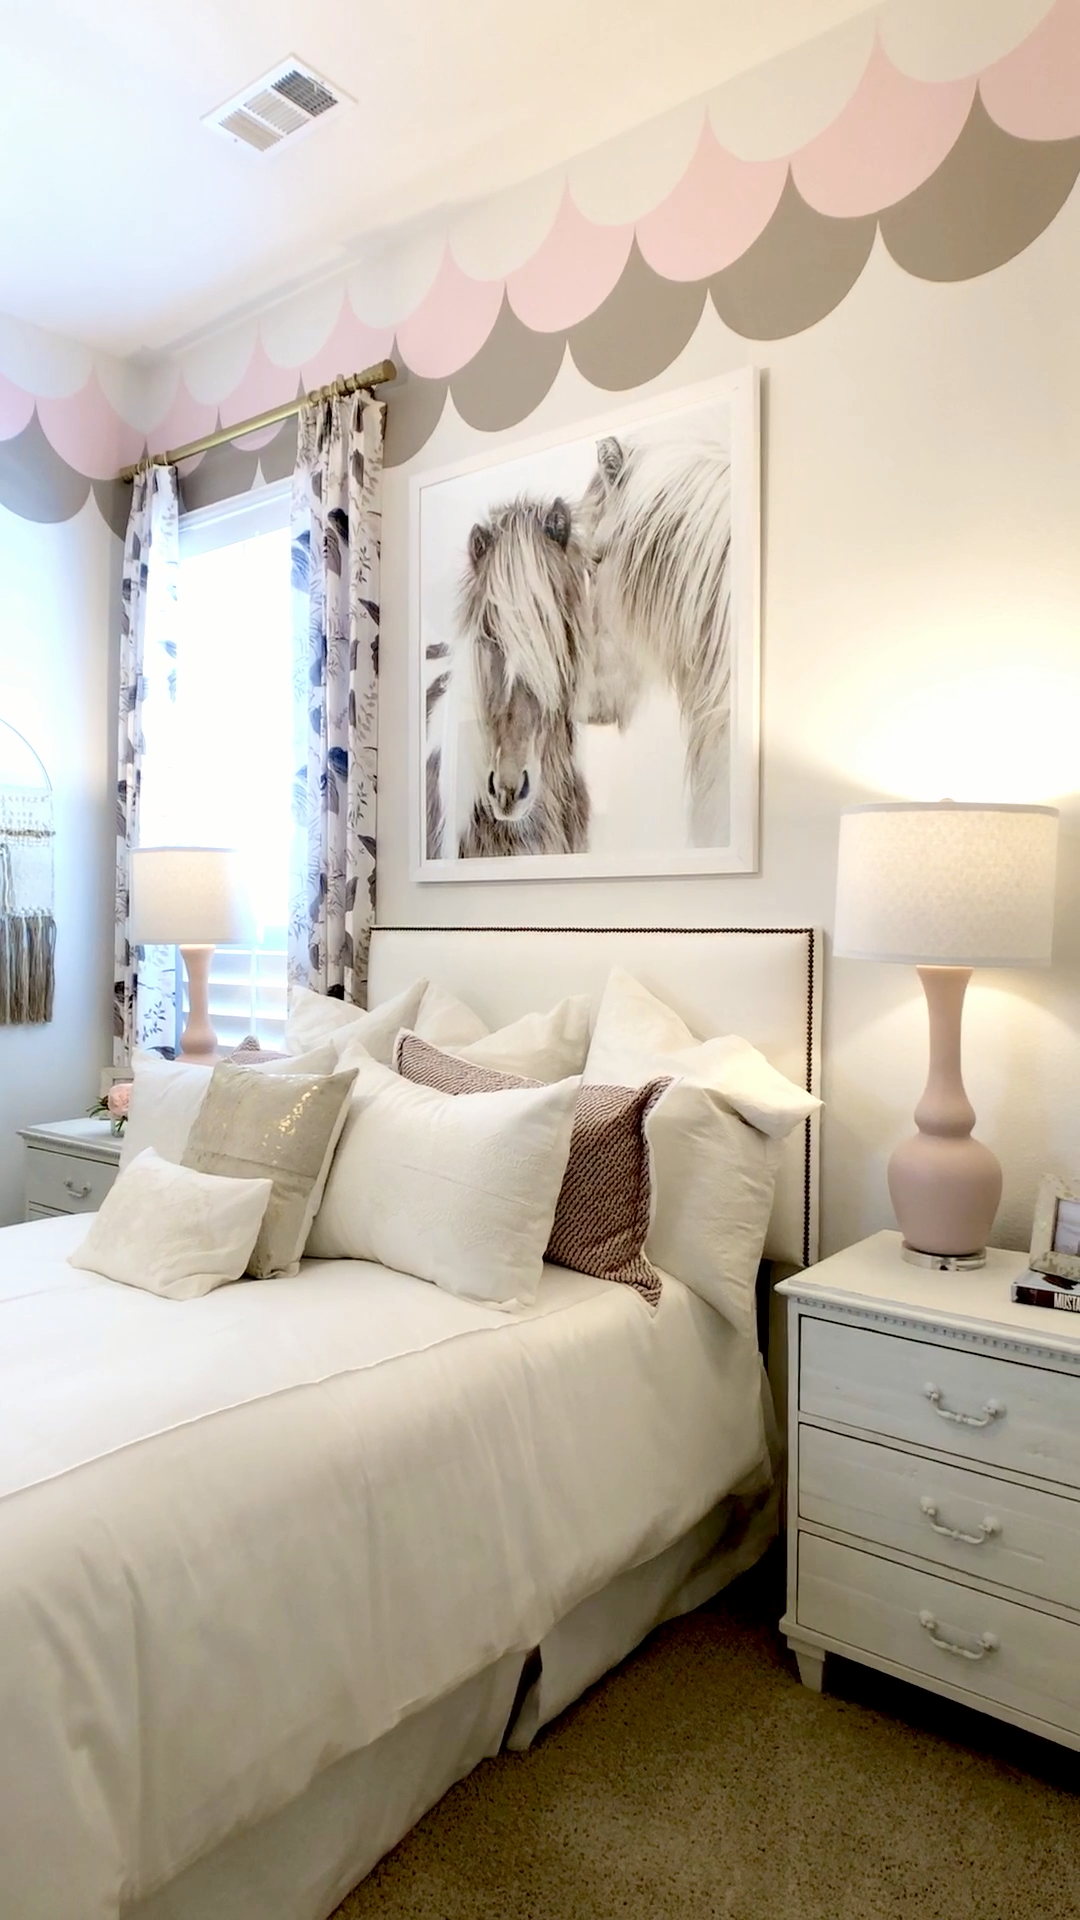 Cream, pink & taupe boho bedroom with woven wall hangings, horse art print & custom paint design.  Gorgeous model home tour - click to see more photos we took of this home.... Model home decor inspiration...THE DECORATING COACH #decoratingtips #bohobedroom #bohodecor #horseart #girlsbedroom #girlsbohobedroom